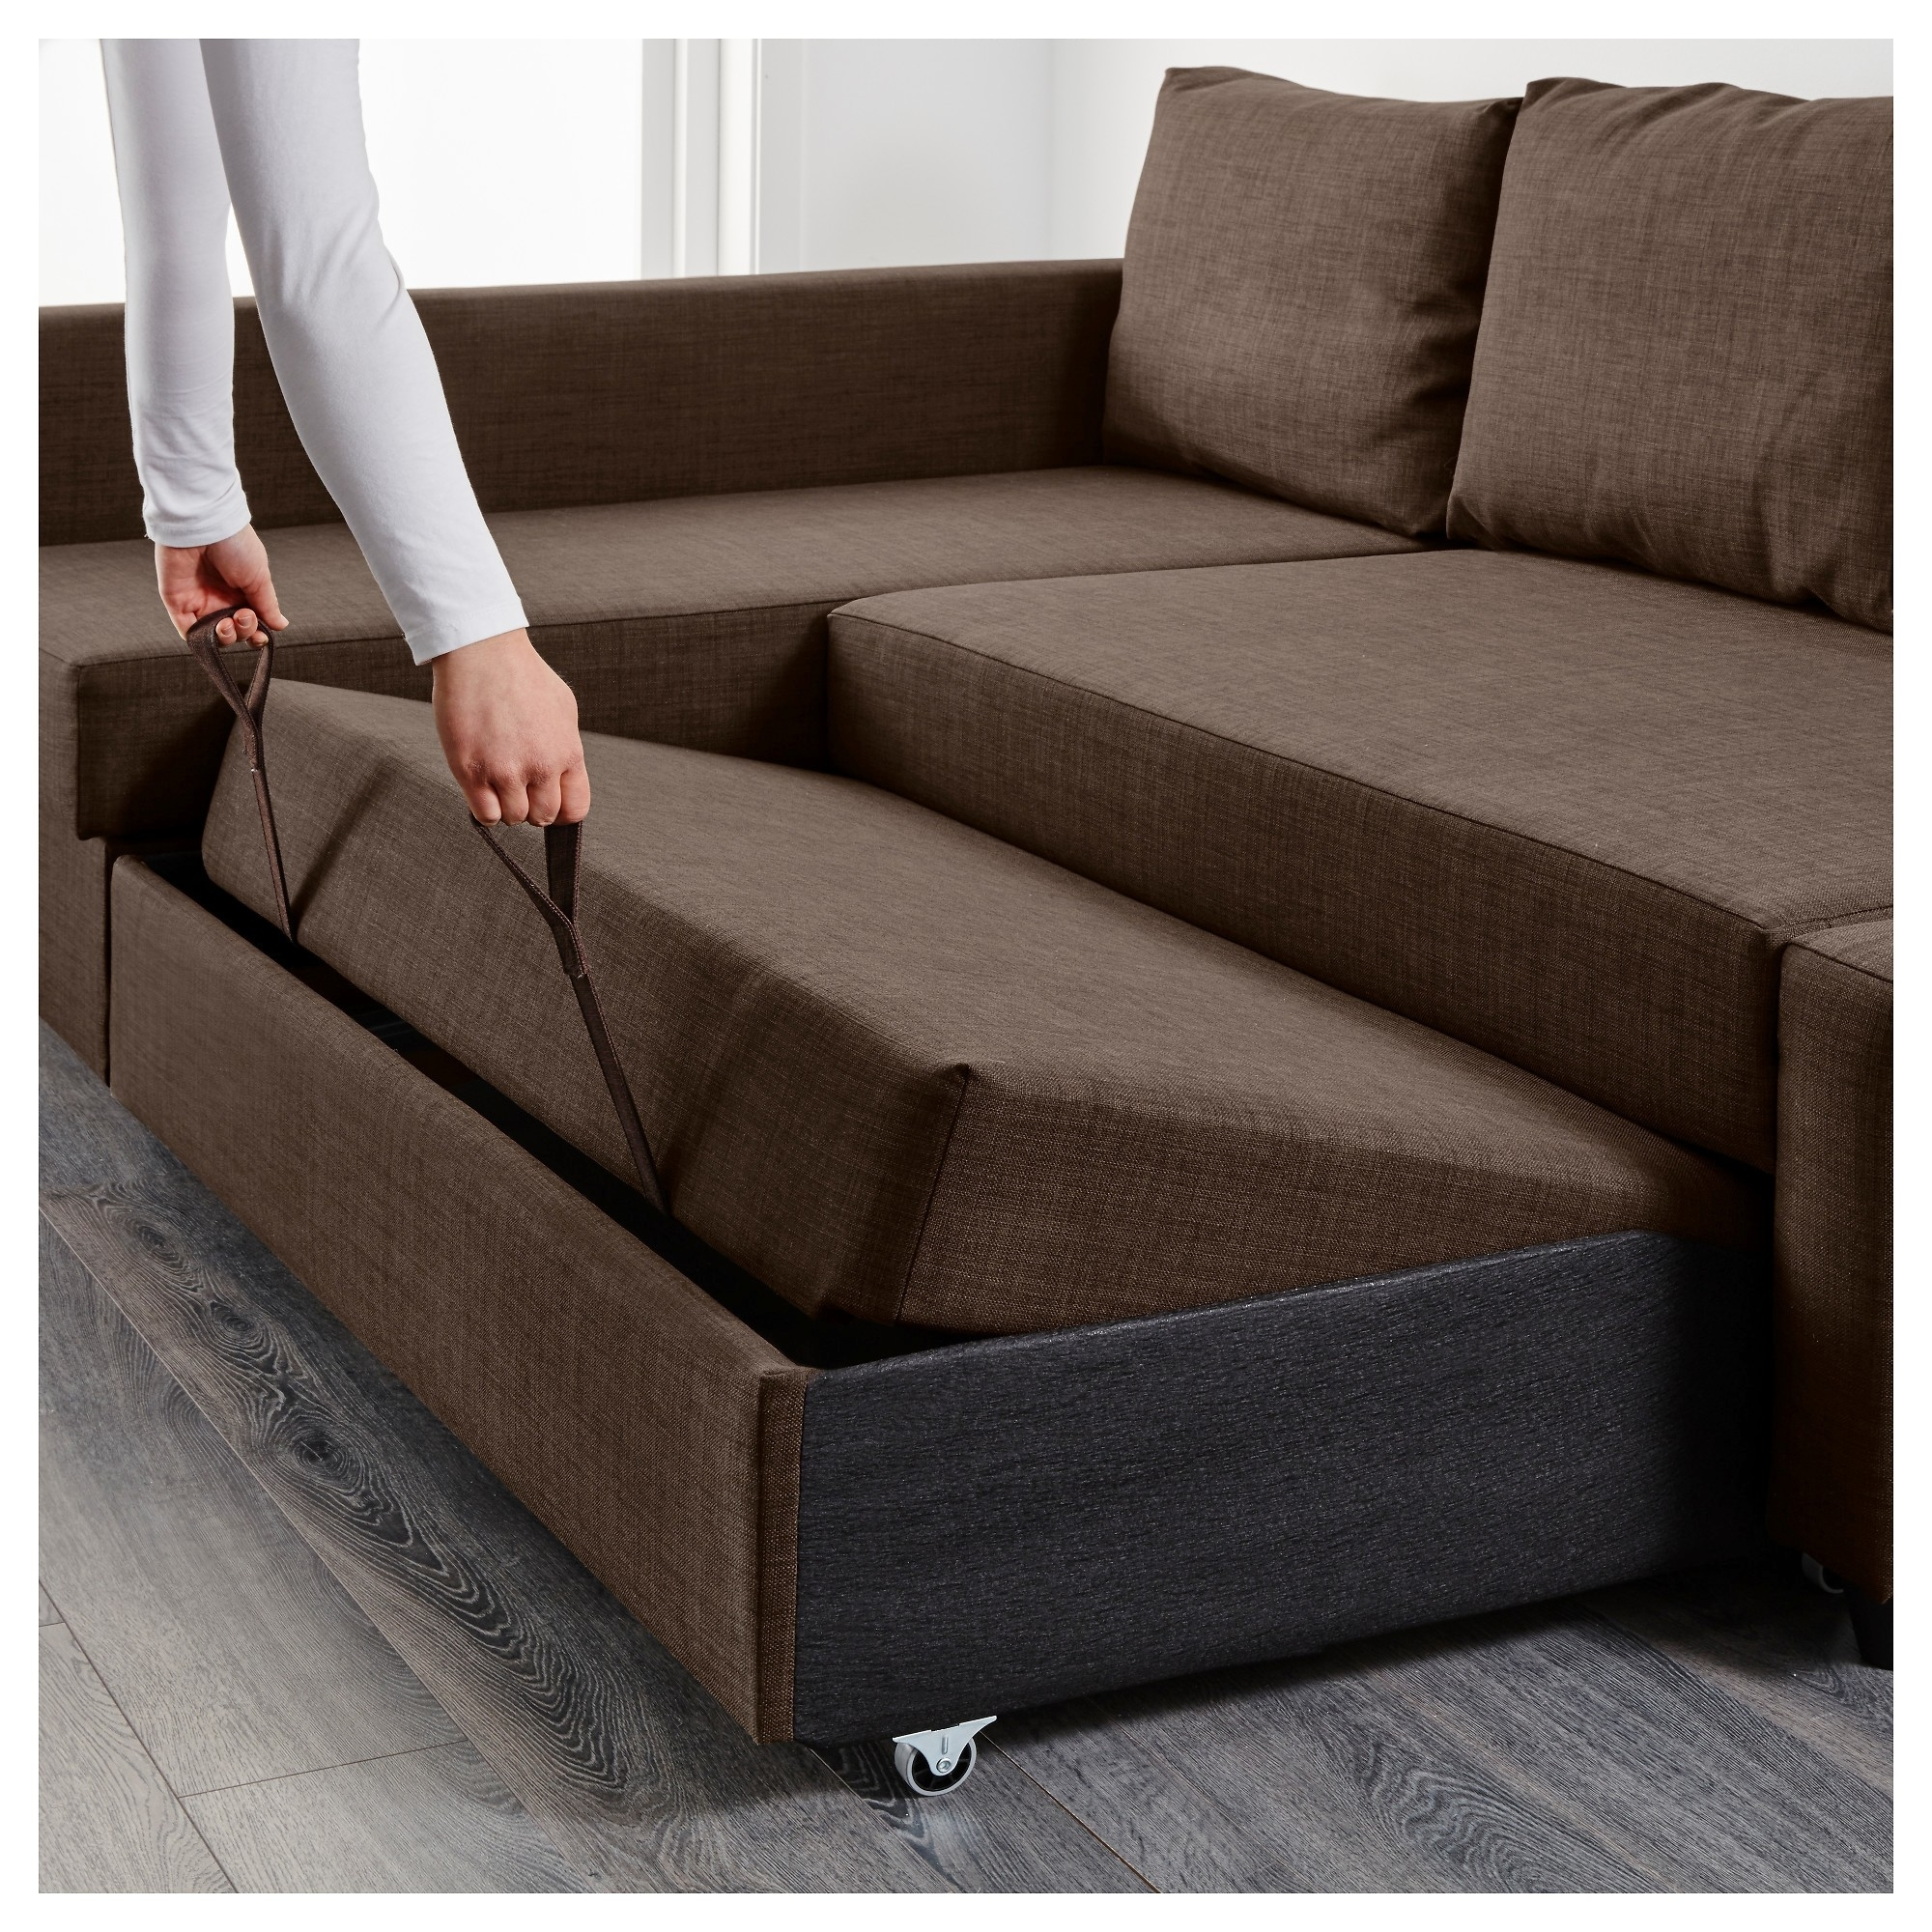 Fresh Bed Sofa Couch Layout – Modern Sofa Design Ideas | Modern Sofa Inside Taren Reversible Sofa/chaise Sleeper Sectionals With Storage Ottoman (View 11 of 30)